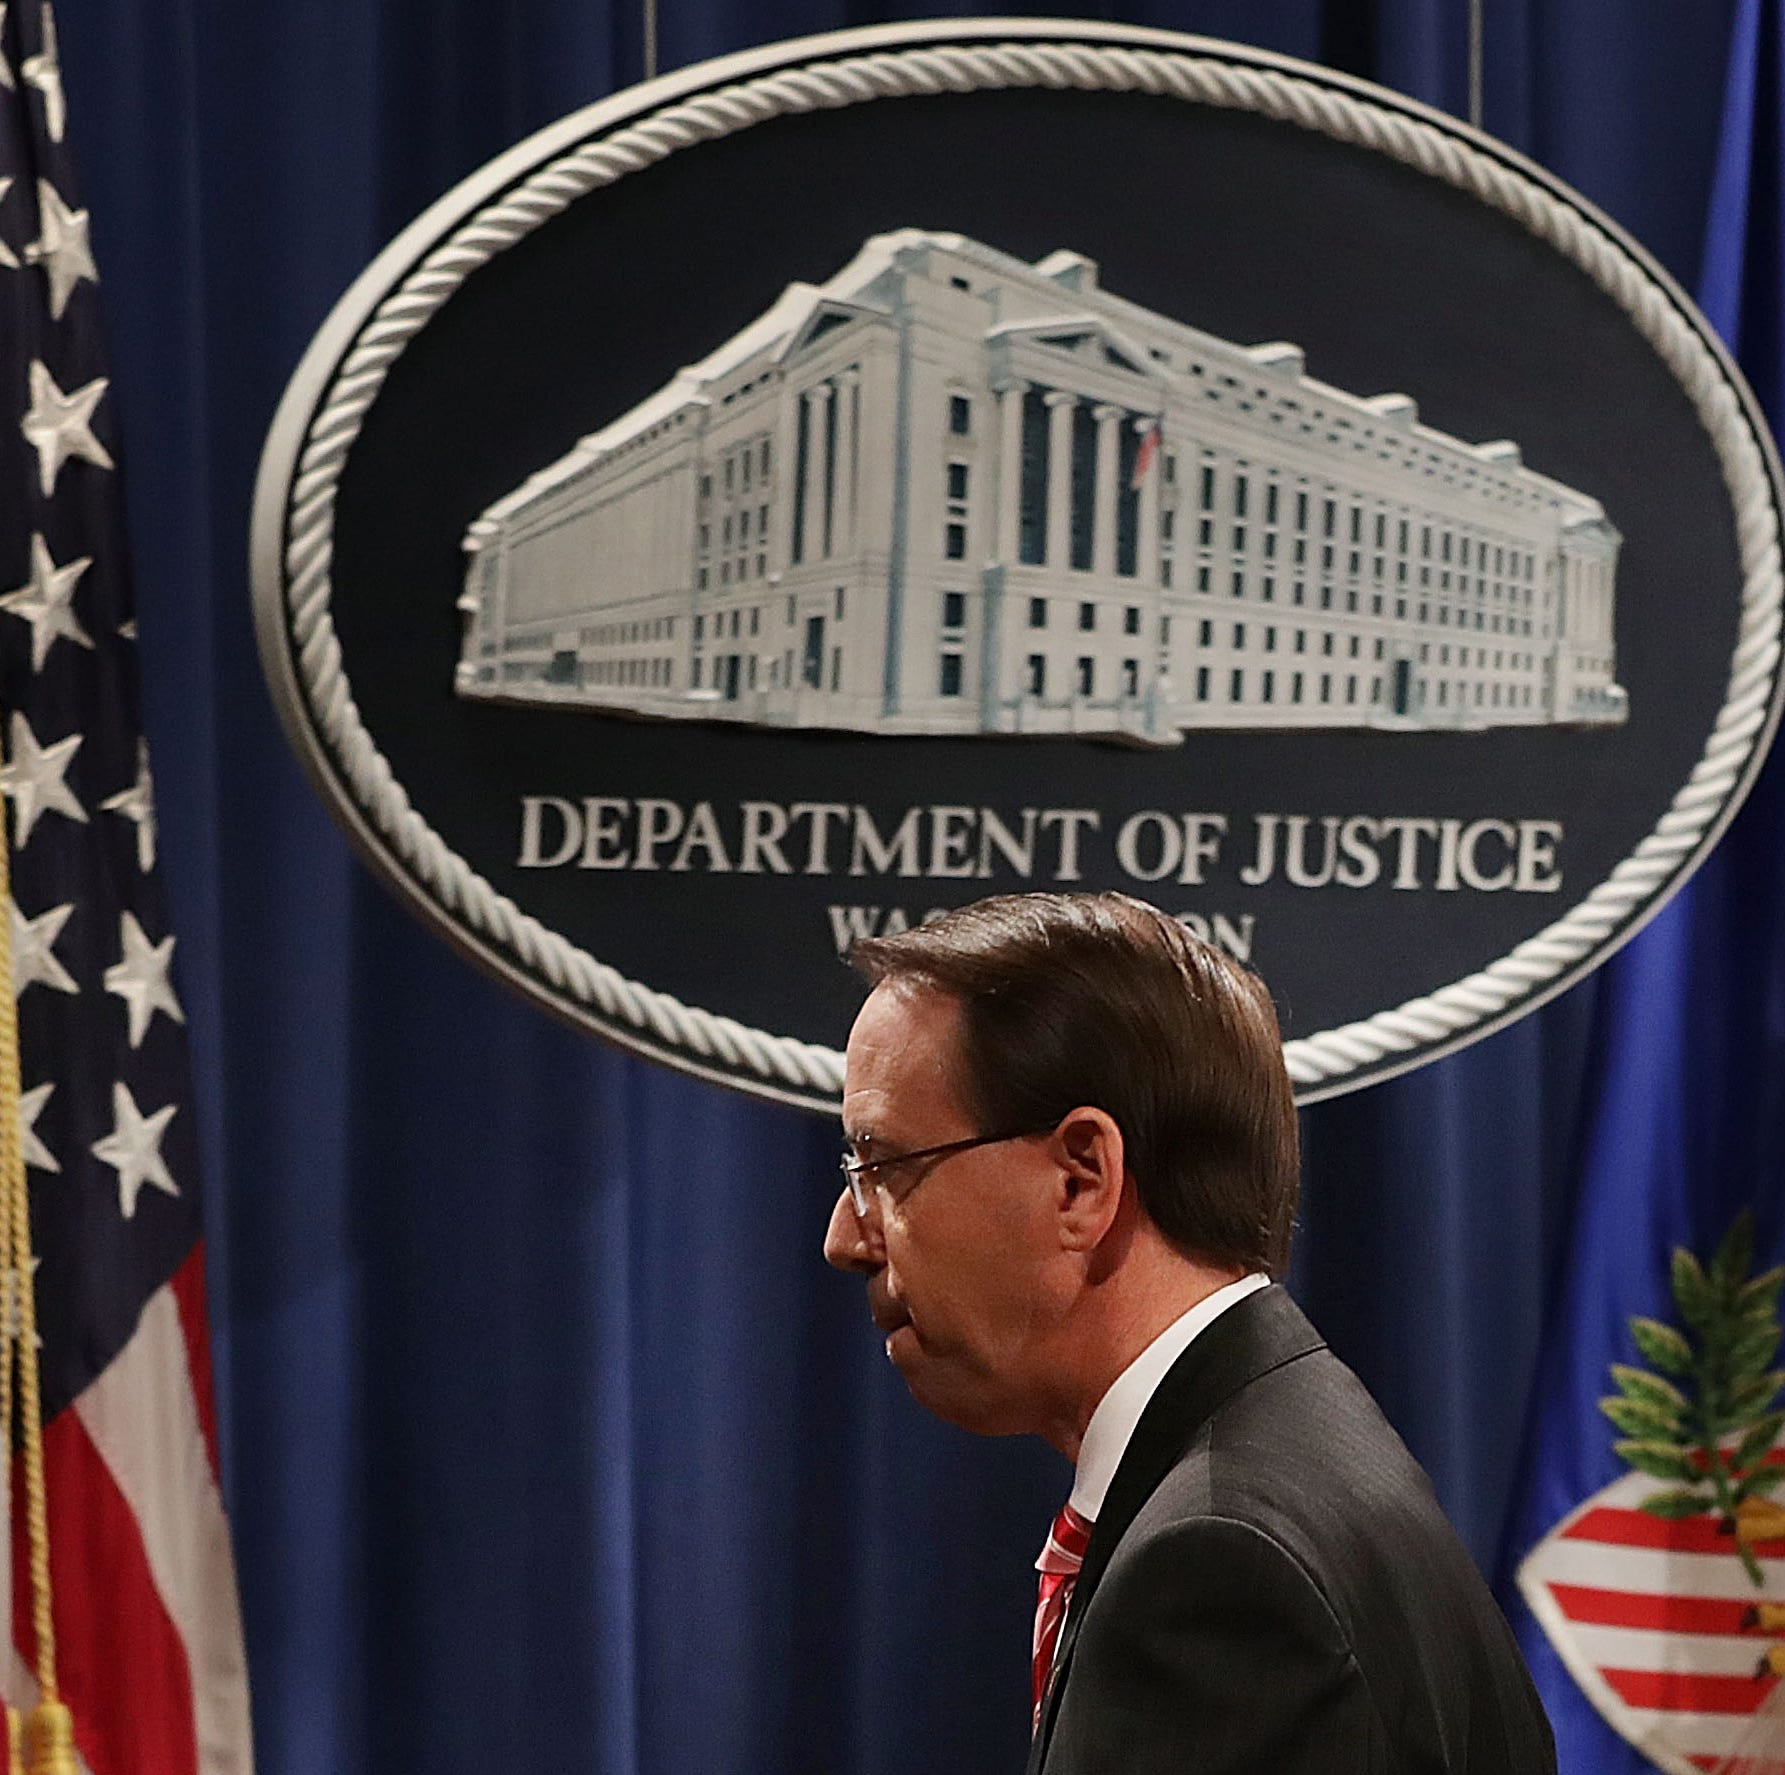 It's time for Rod Rosenstein to resign